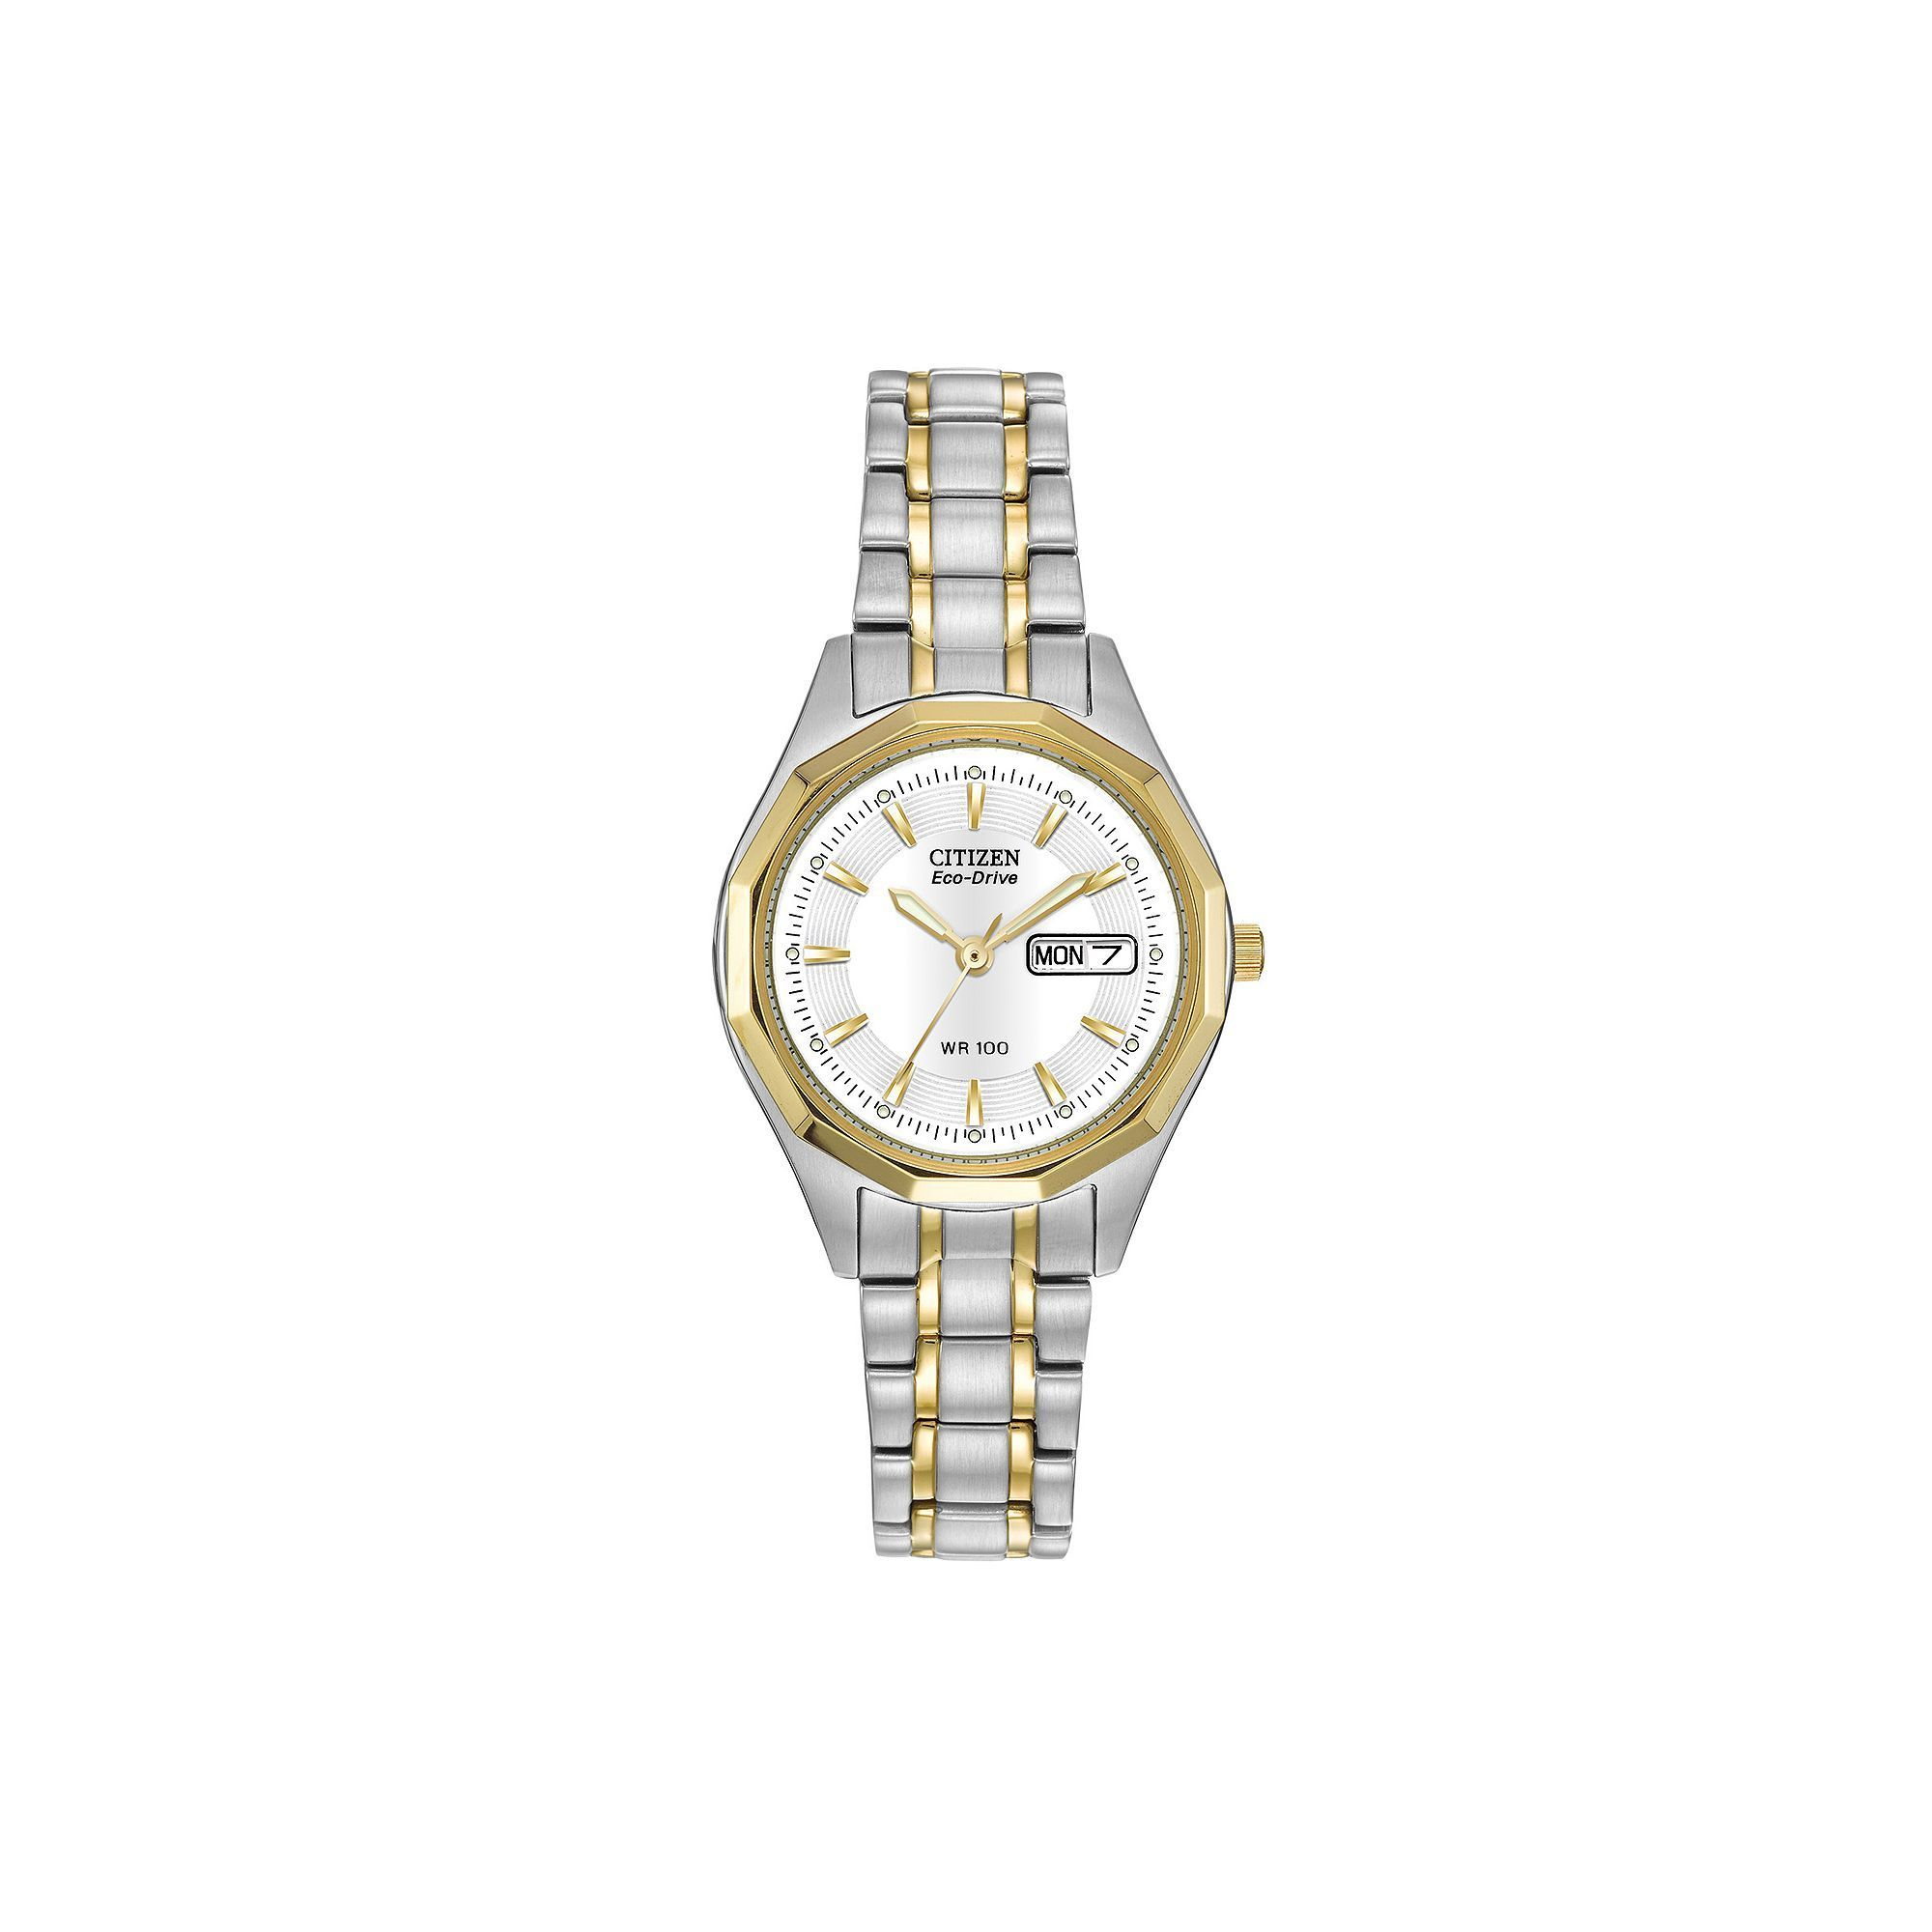 e9b8b16f27bc01 Citizen Eco-Drive Women's Two Tone Stainless Steel Watch - EW3144-51A, Size:  Small, multicolor